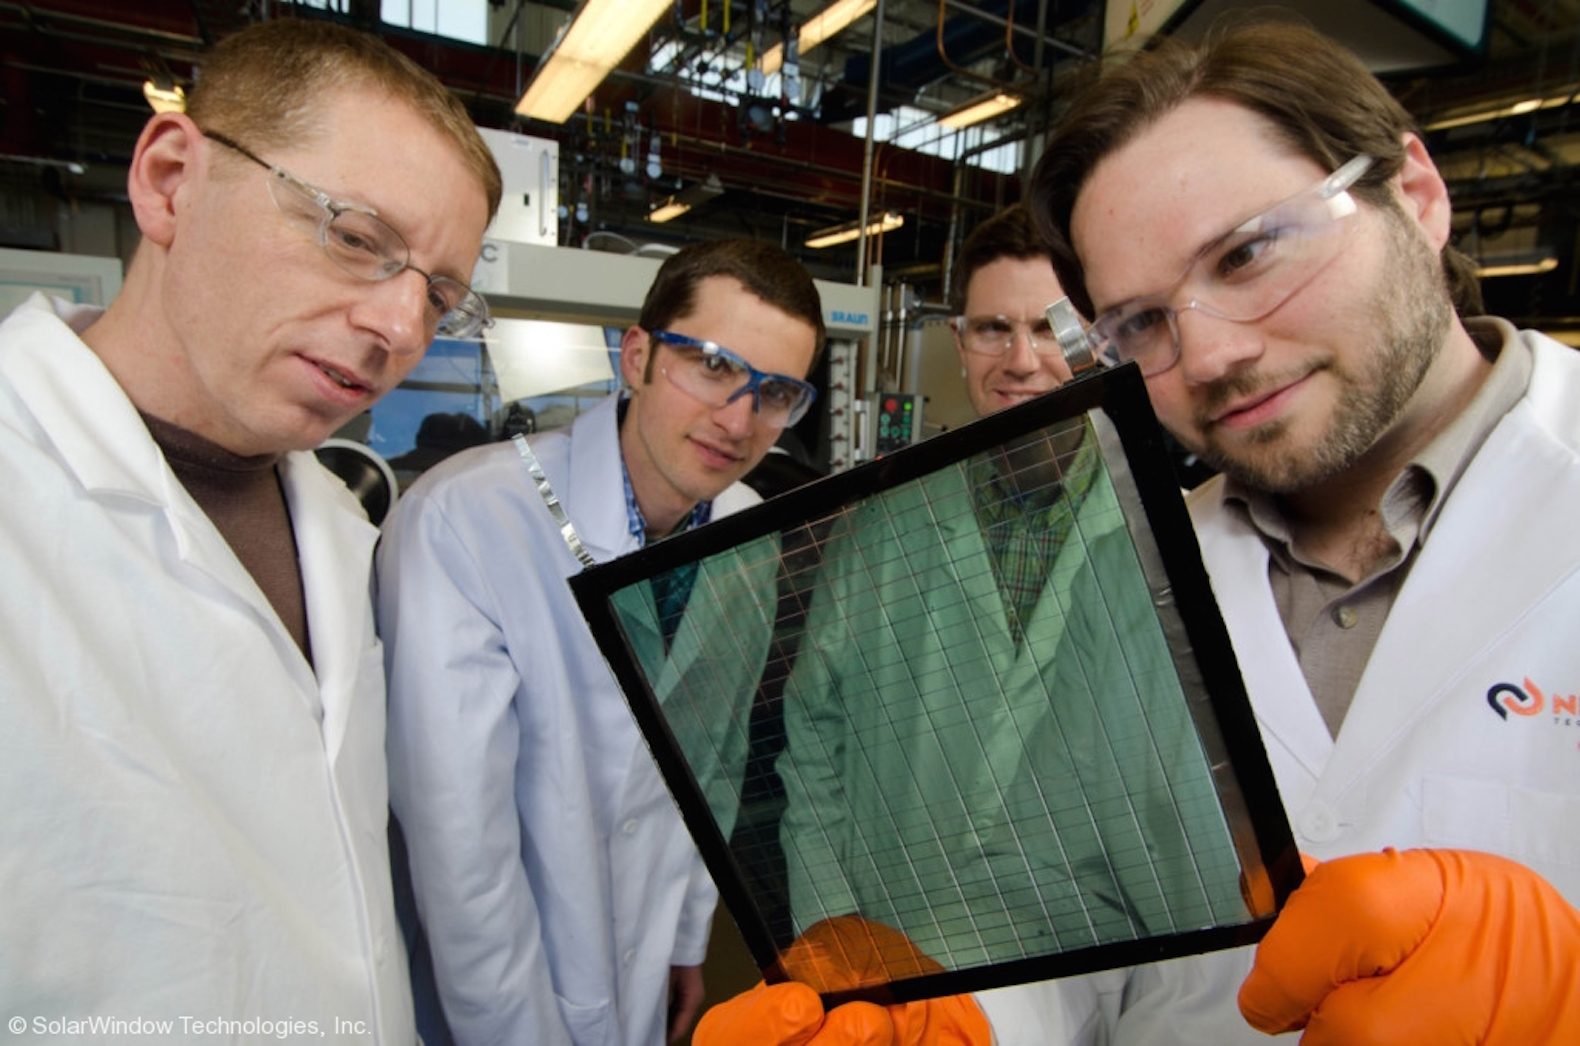 Revolutionary new solar windows could generate 50 times more power than conventional photovoltaics